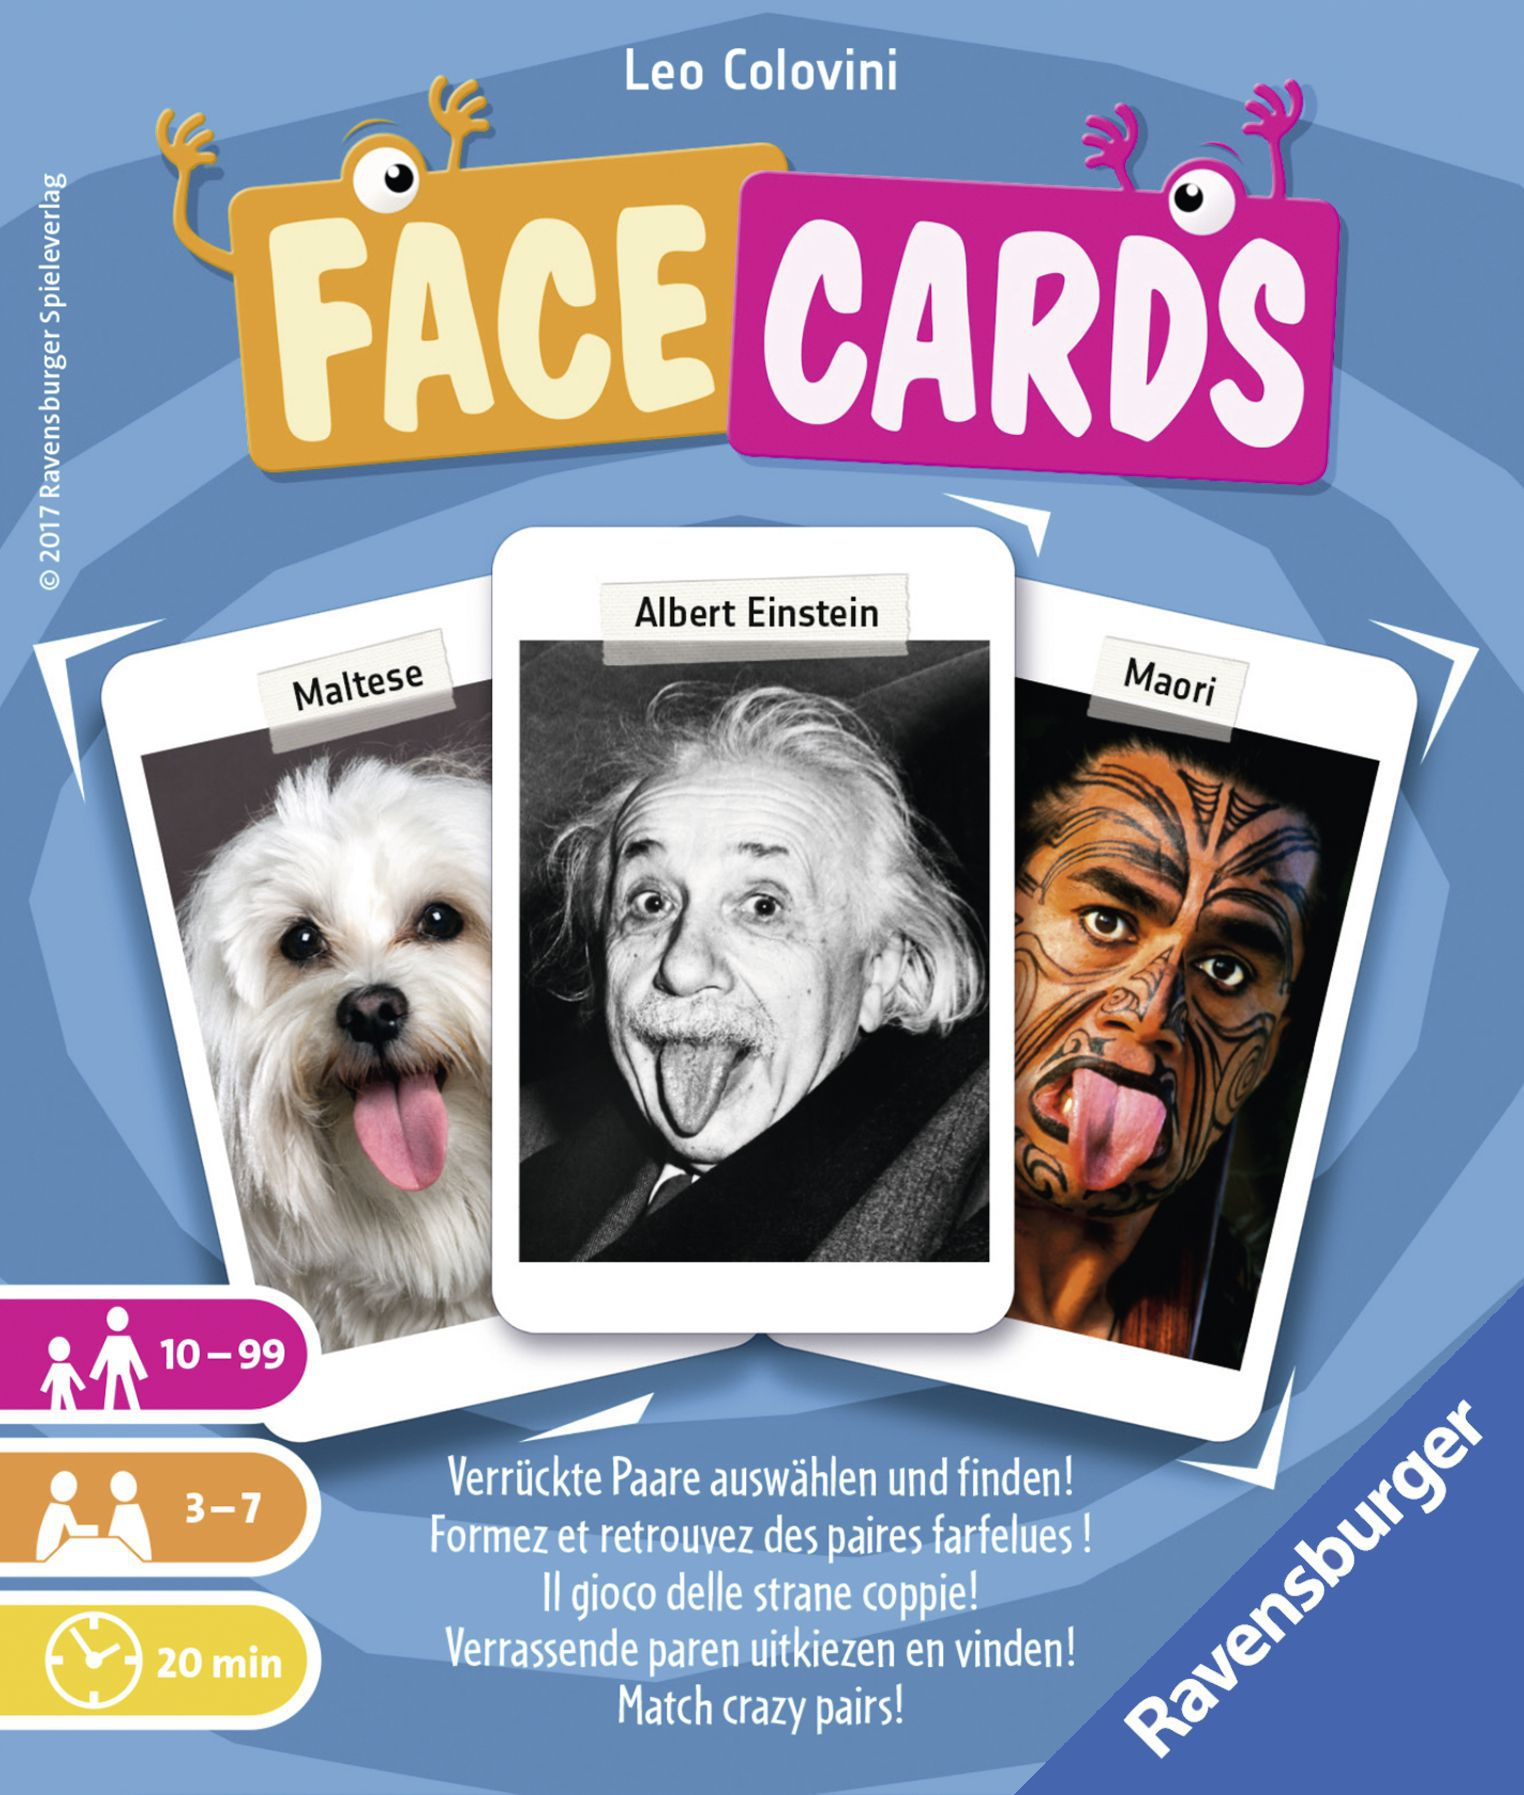 Facecards